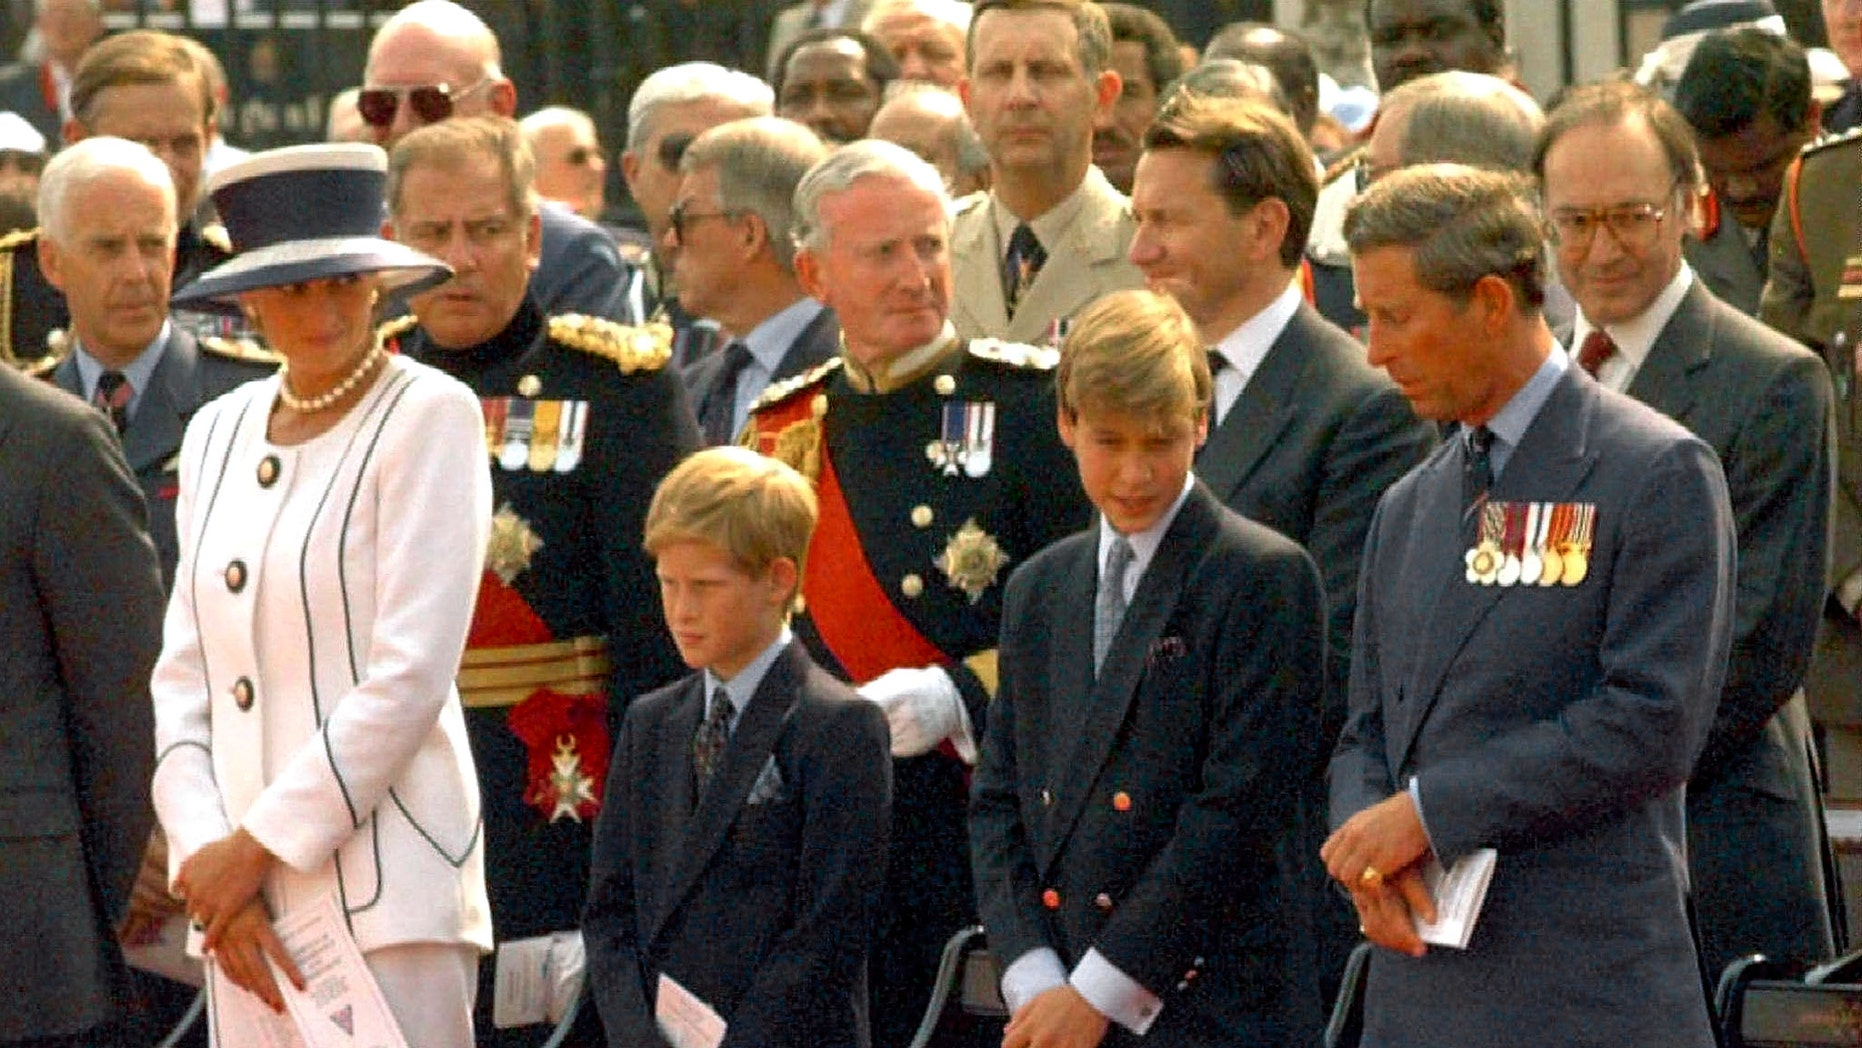 File photo -  Princess Diana and Prince Charles, with their sons Prince Harry (L) and Prince William, stand outside Buckingham Palace August 19, 1995 during Britain's VJ (Victory over Japan) Day commemoration service (Reuters).